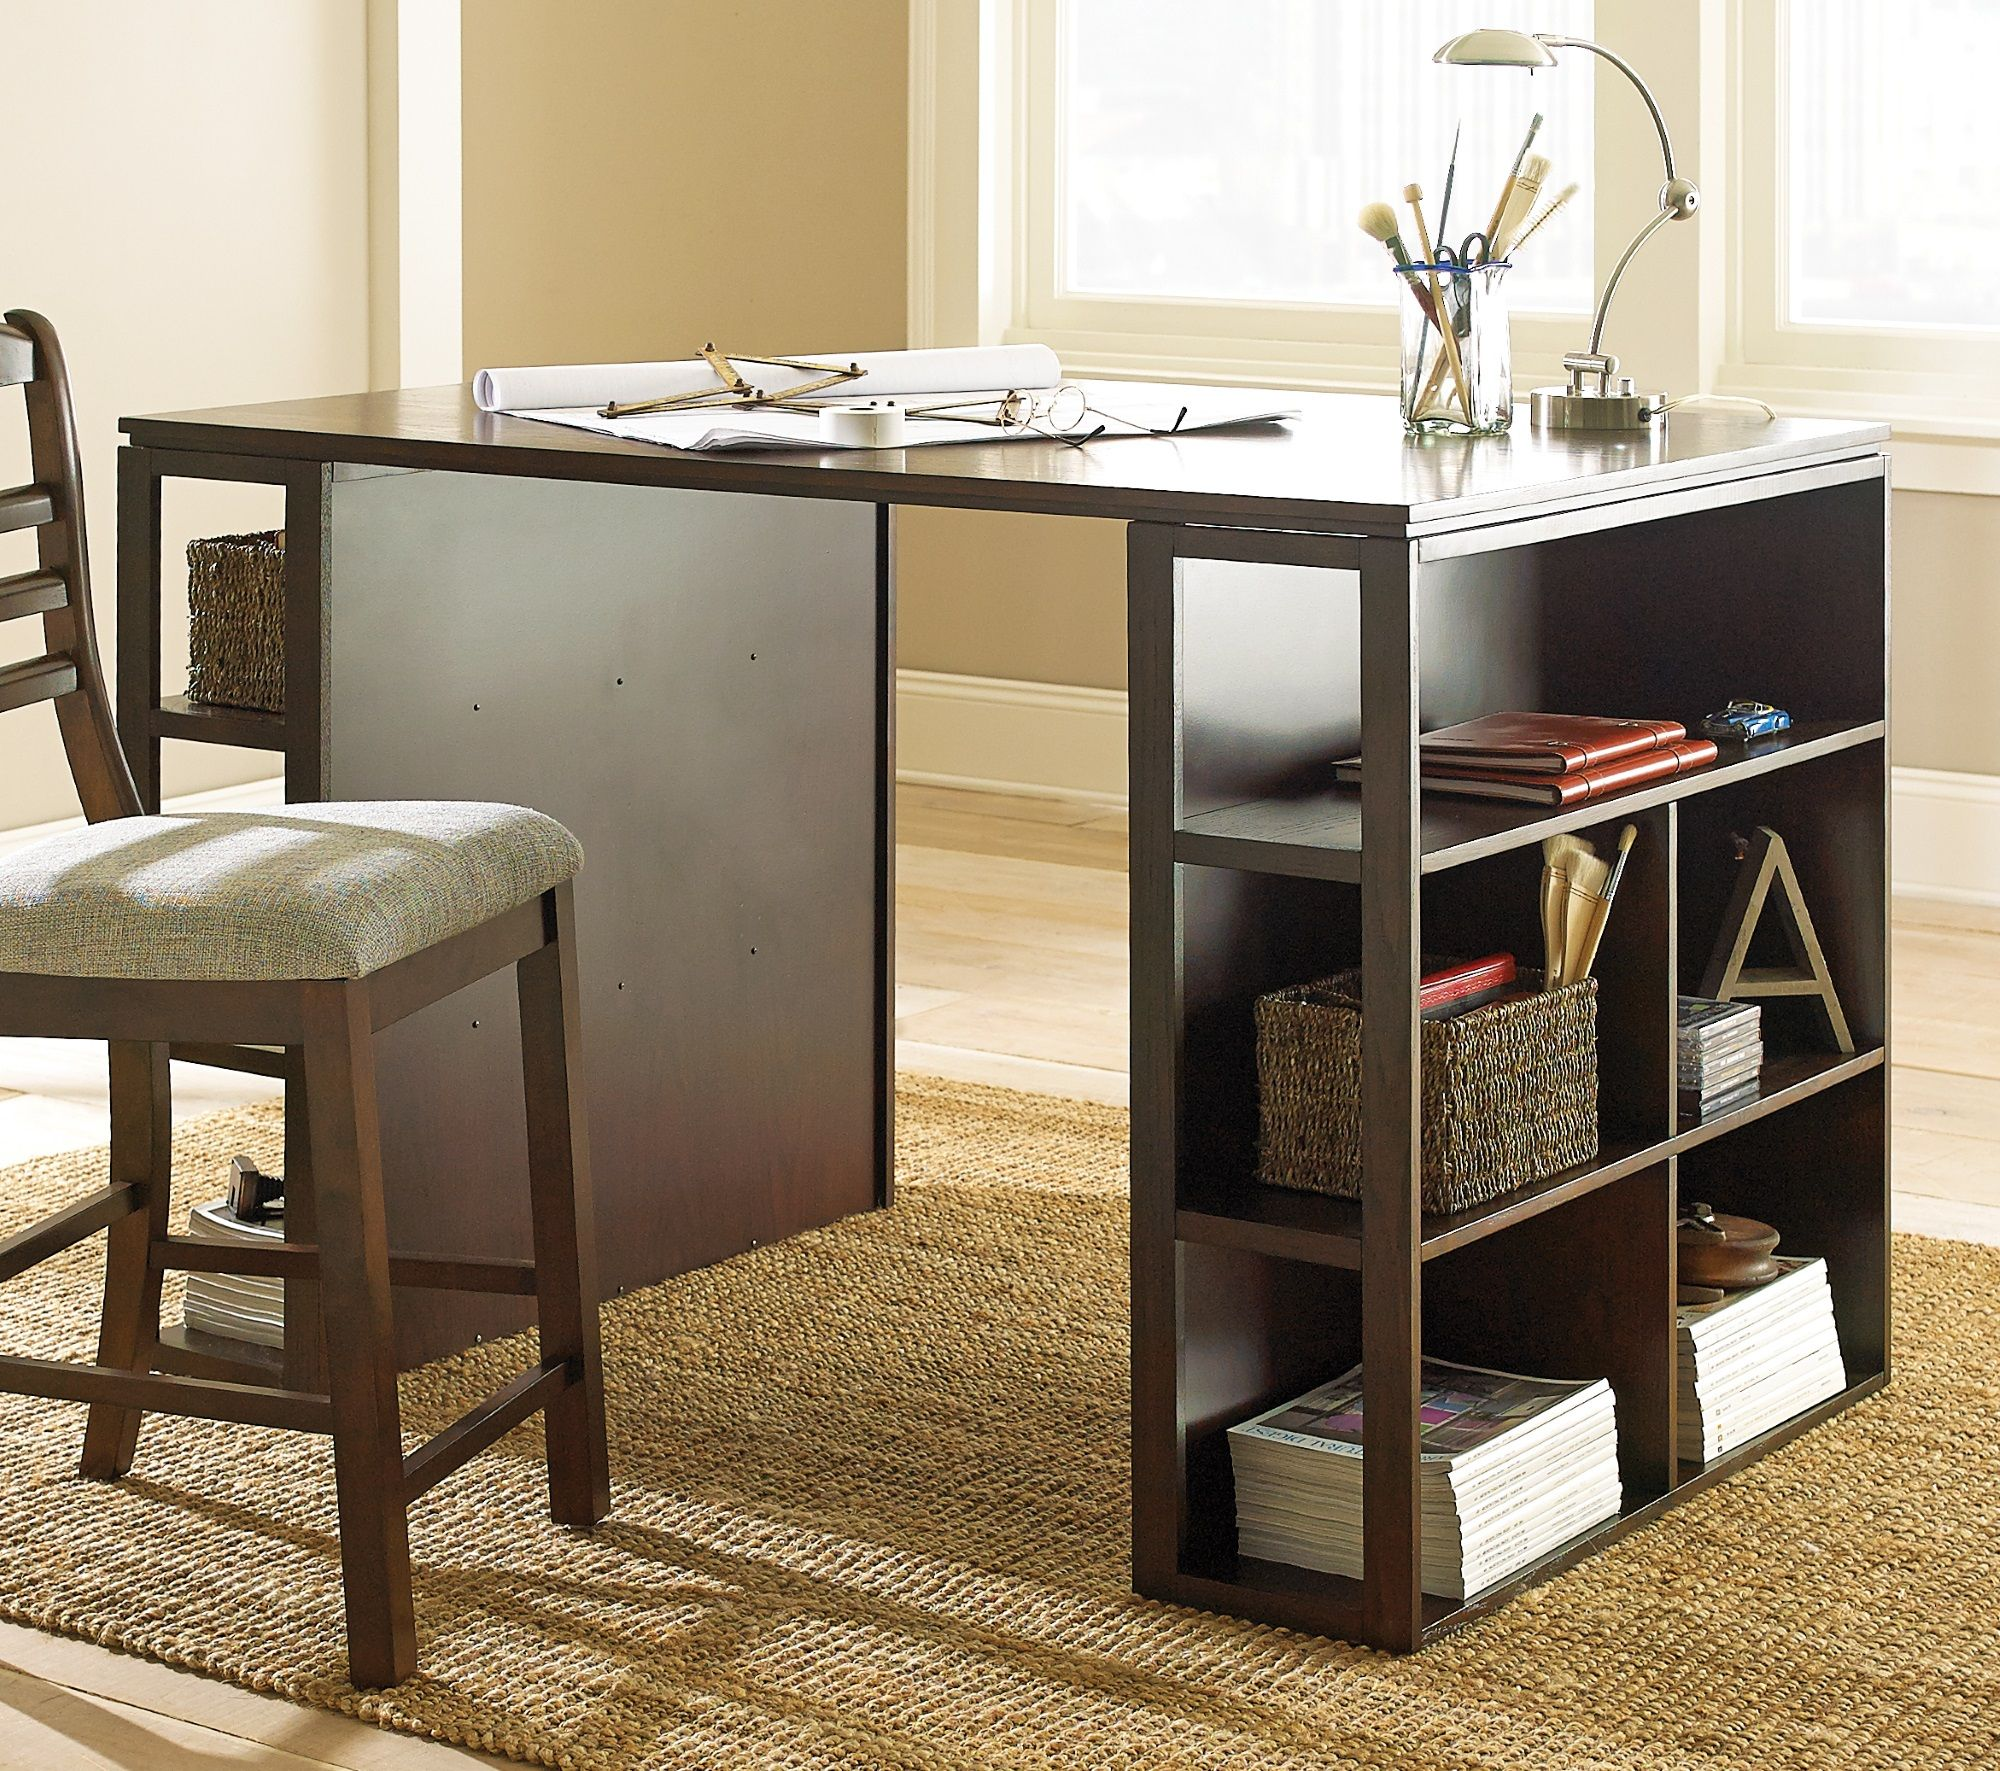 Beau Counter Height Office Desk   Furniture Sets For Living Room Check More At  Http://www.gameintown.com/counter Height Office Desk/   Home Interior    Pinterest ...